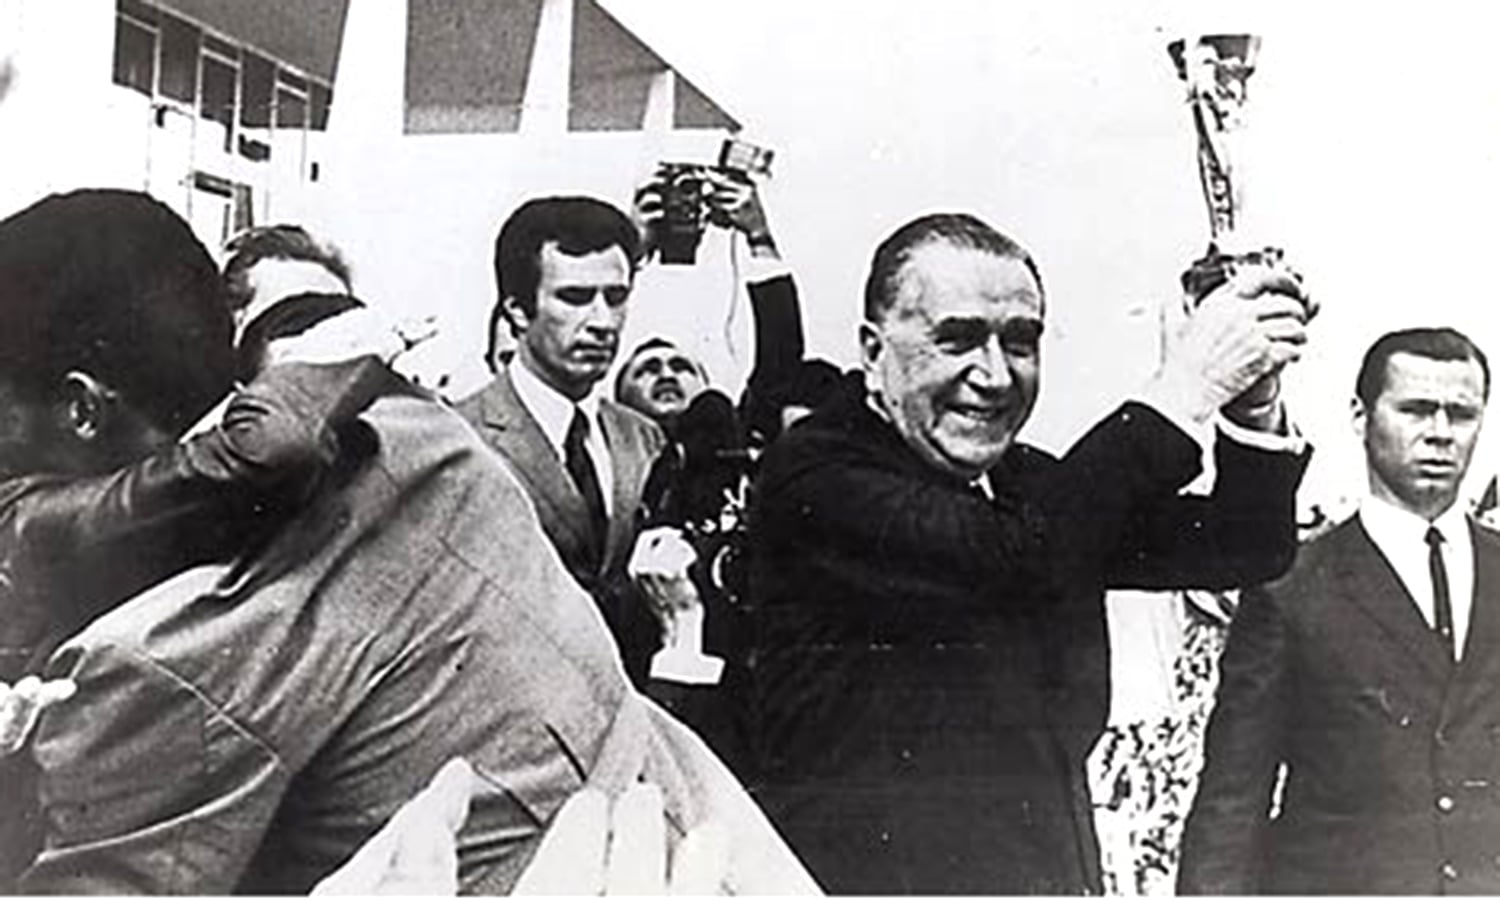 Brazilian dictator Medici celebrates the 1970 world cup victory. He called it the regeneration of Brazilian nationalism and unity. -- Photo: TIME